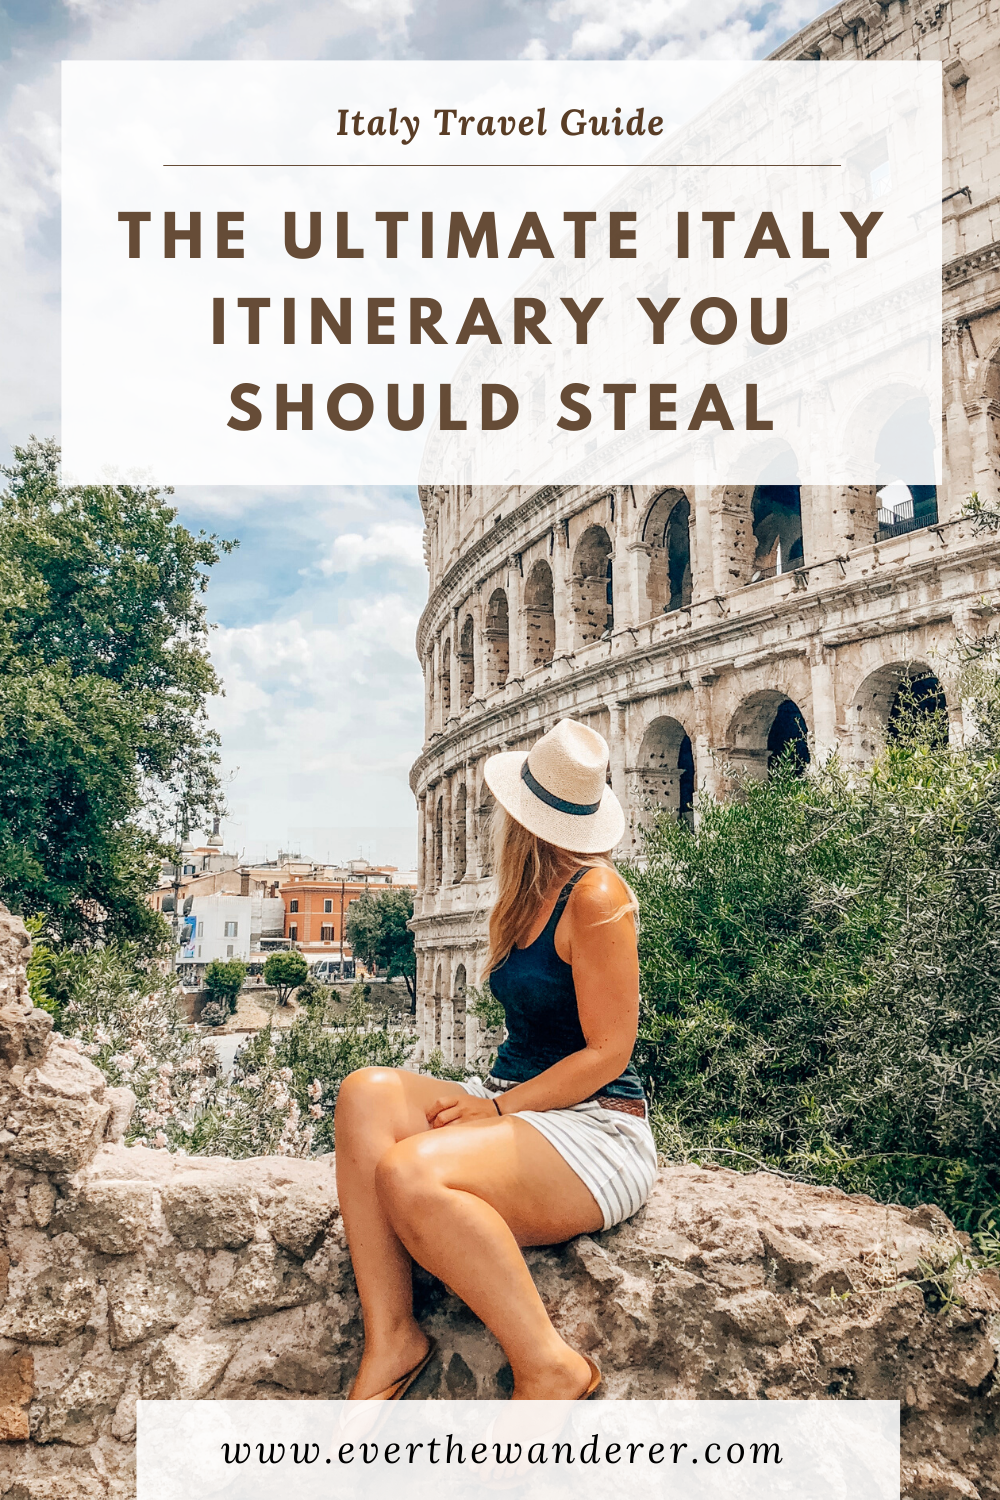 This guide will show you our favourite places in Italy, including iconic spots and some secret gems. Get ready to plan the best Italy Itinerary. #italy #italyguide #travelguide